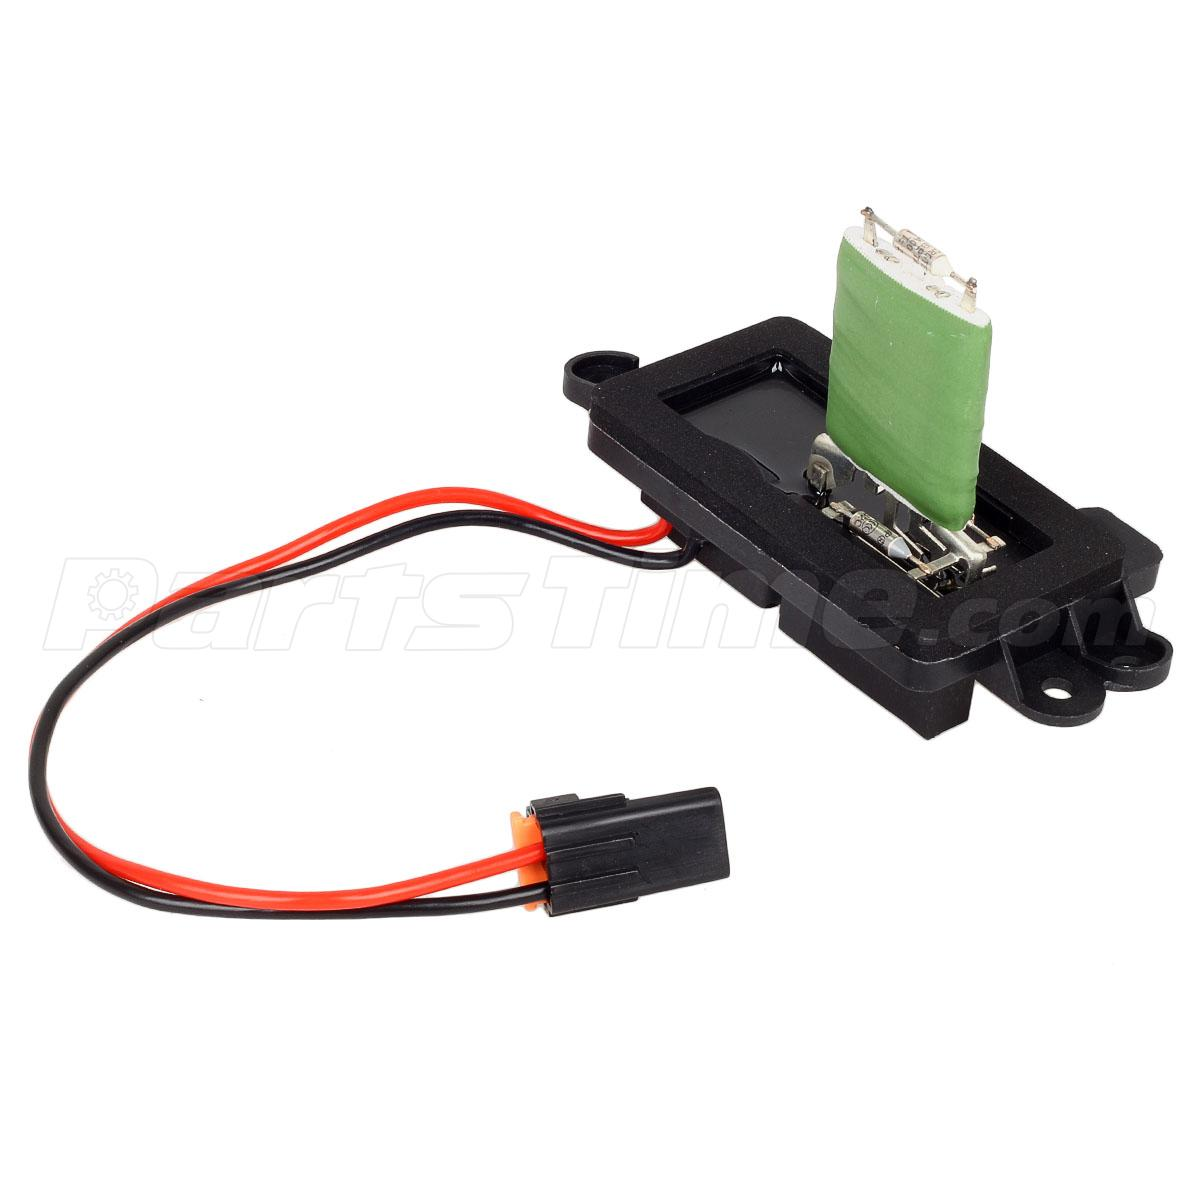 145392 5?rn=3003426 89019088 heater blower motor resistor for cadillac chevy gmc w 7-wire blower motor resistor harness at fashall.co